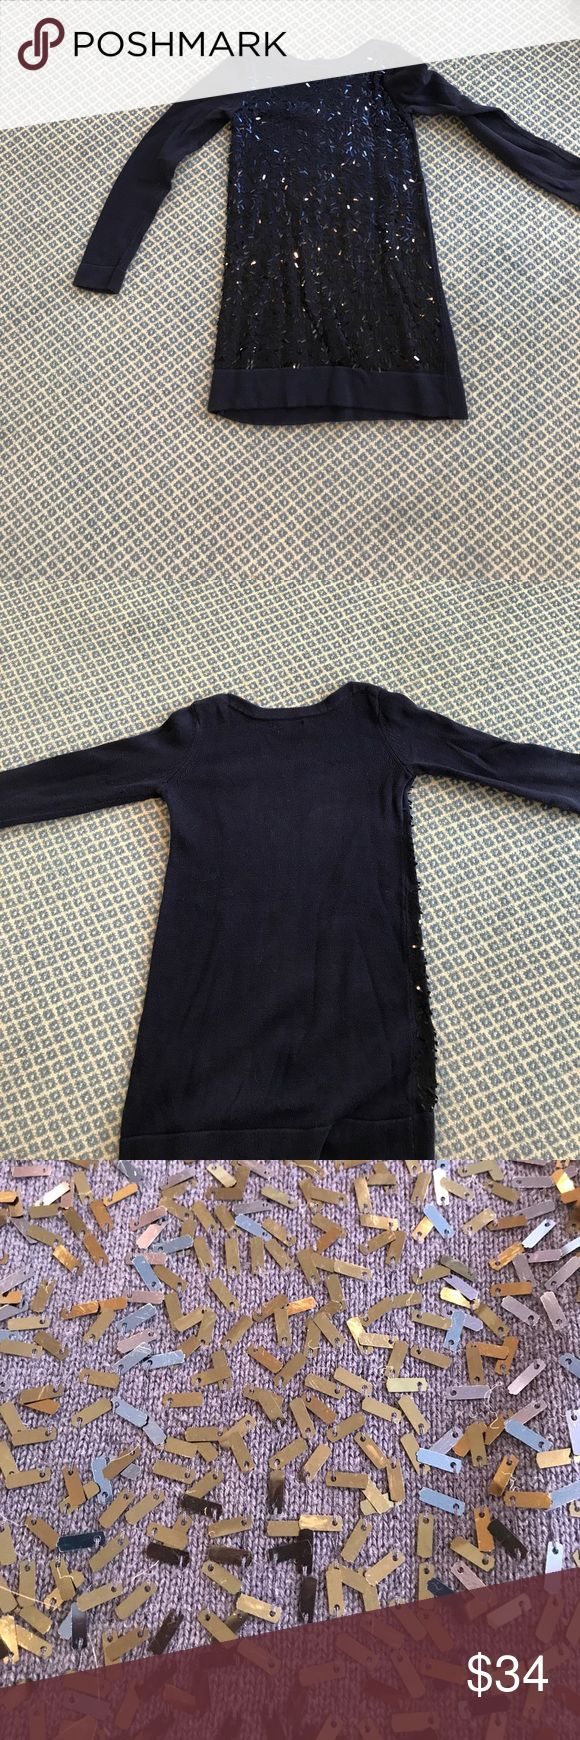 Gap Kids Dress Size 8M with sparkles and sequins. Navy blue sparkle dress for kids size 8. In great condition. GAP Dresses Casual